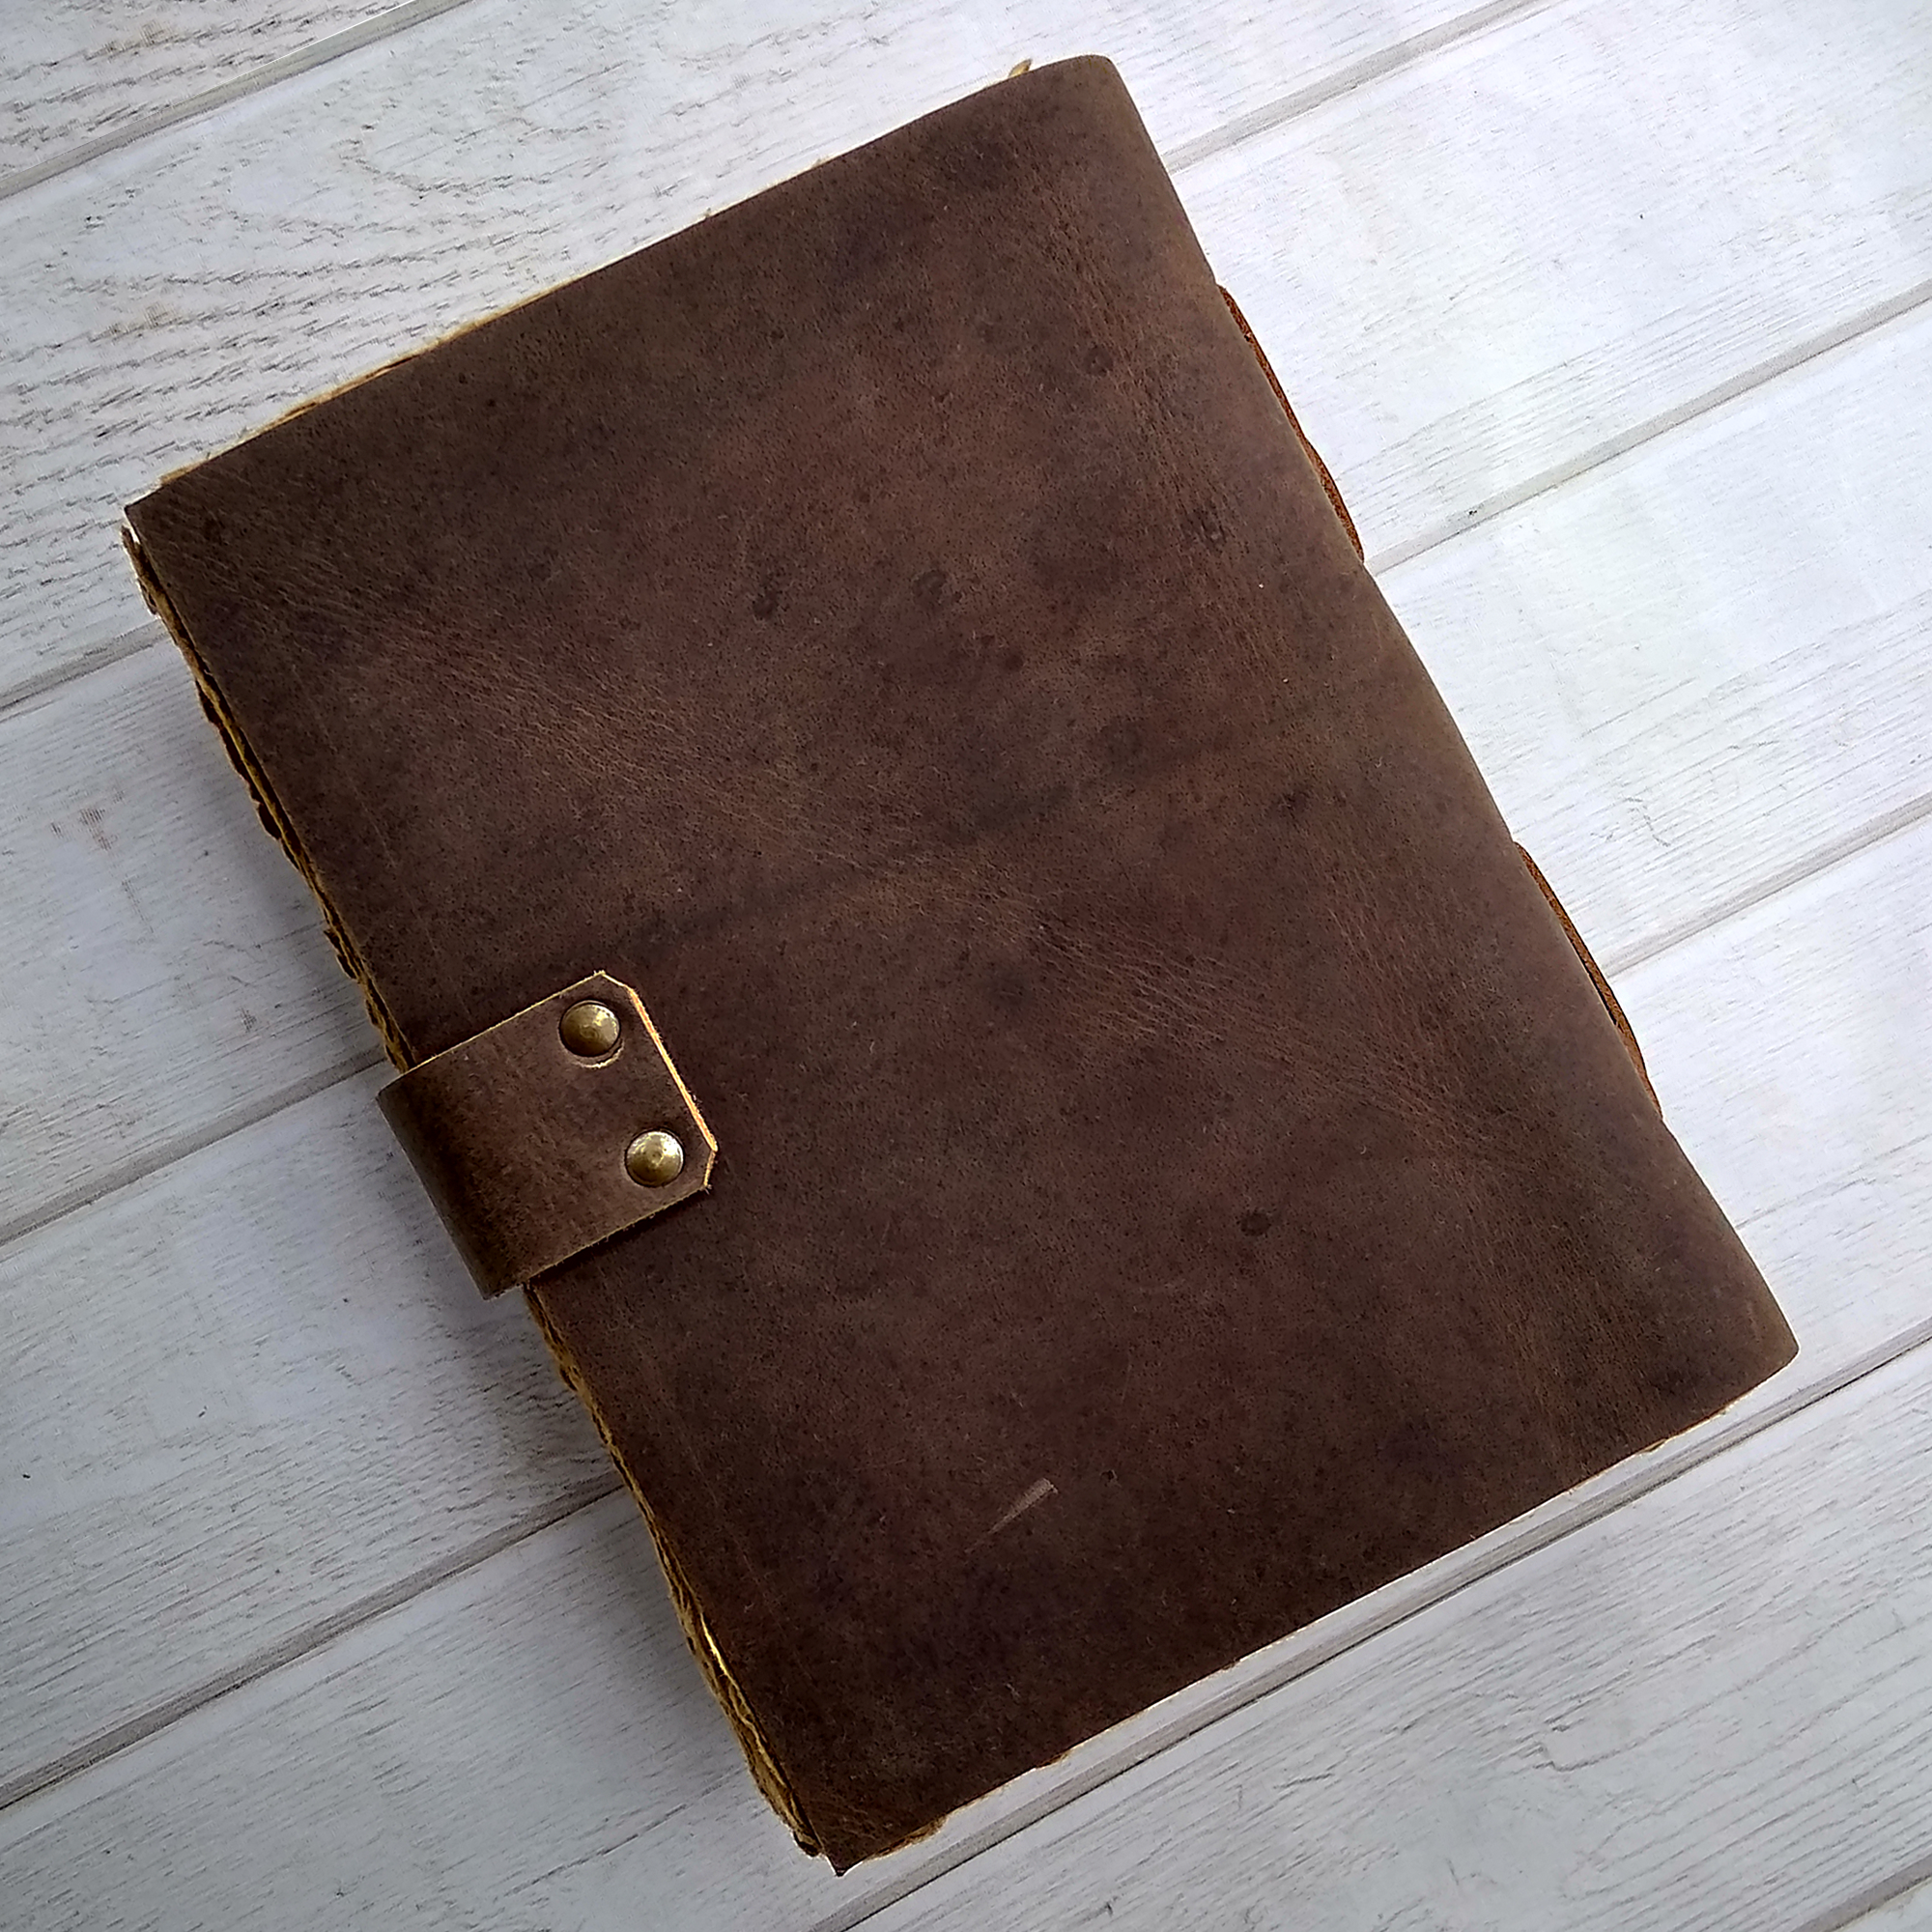 Leather Bound Journal - Handmade Antique Deckle Edge Paper - Leather Sketchbook